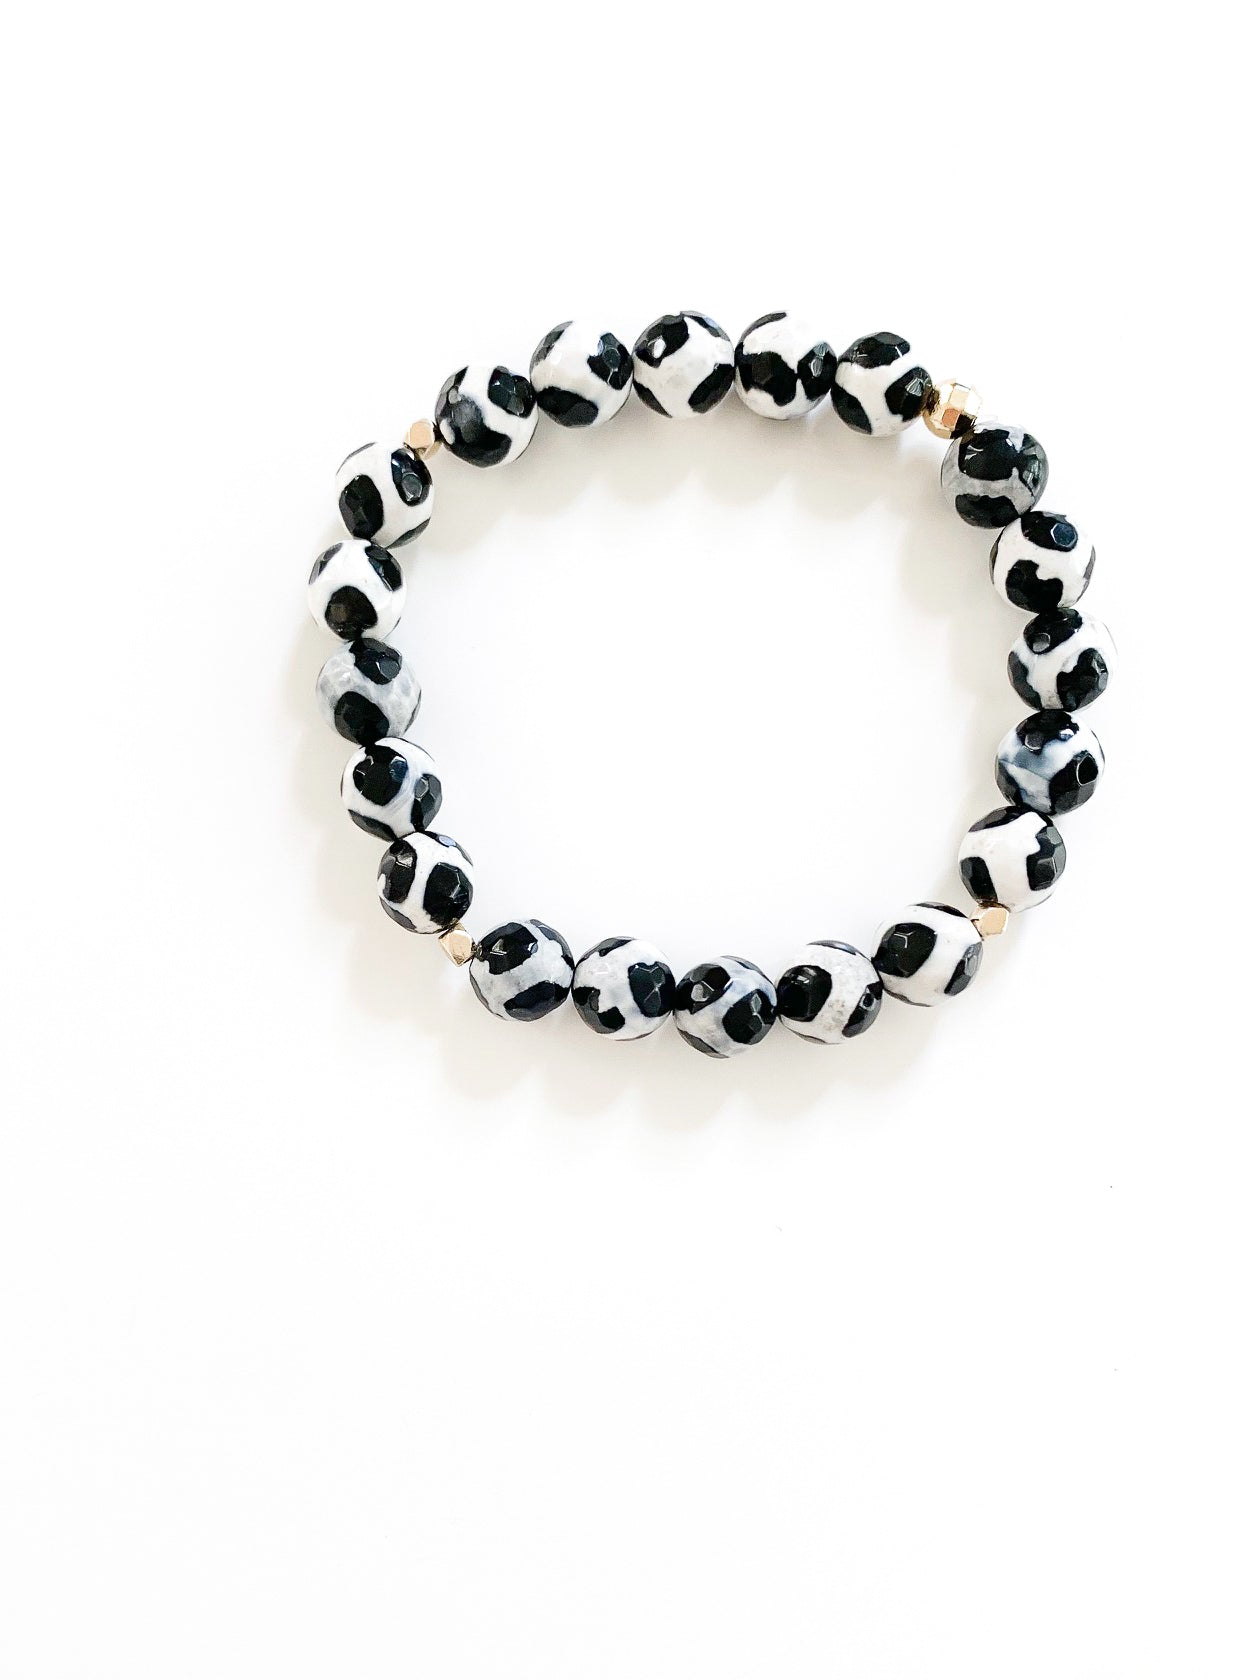 Black + White Tibetan Agate Collection